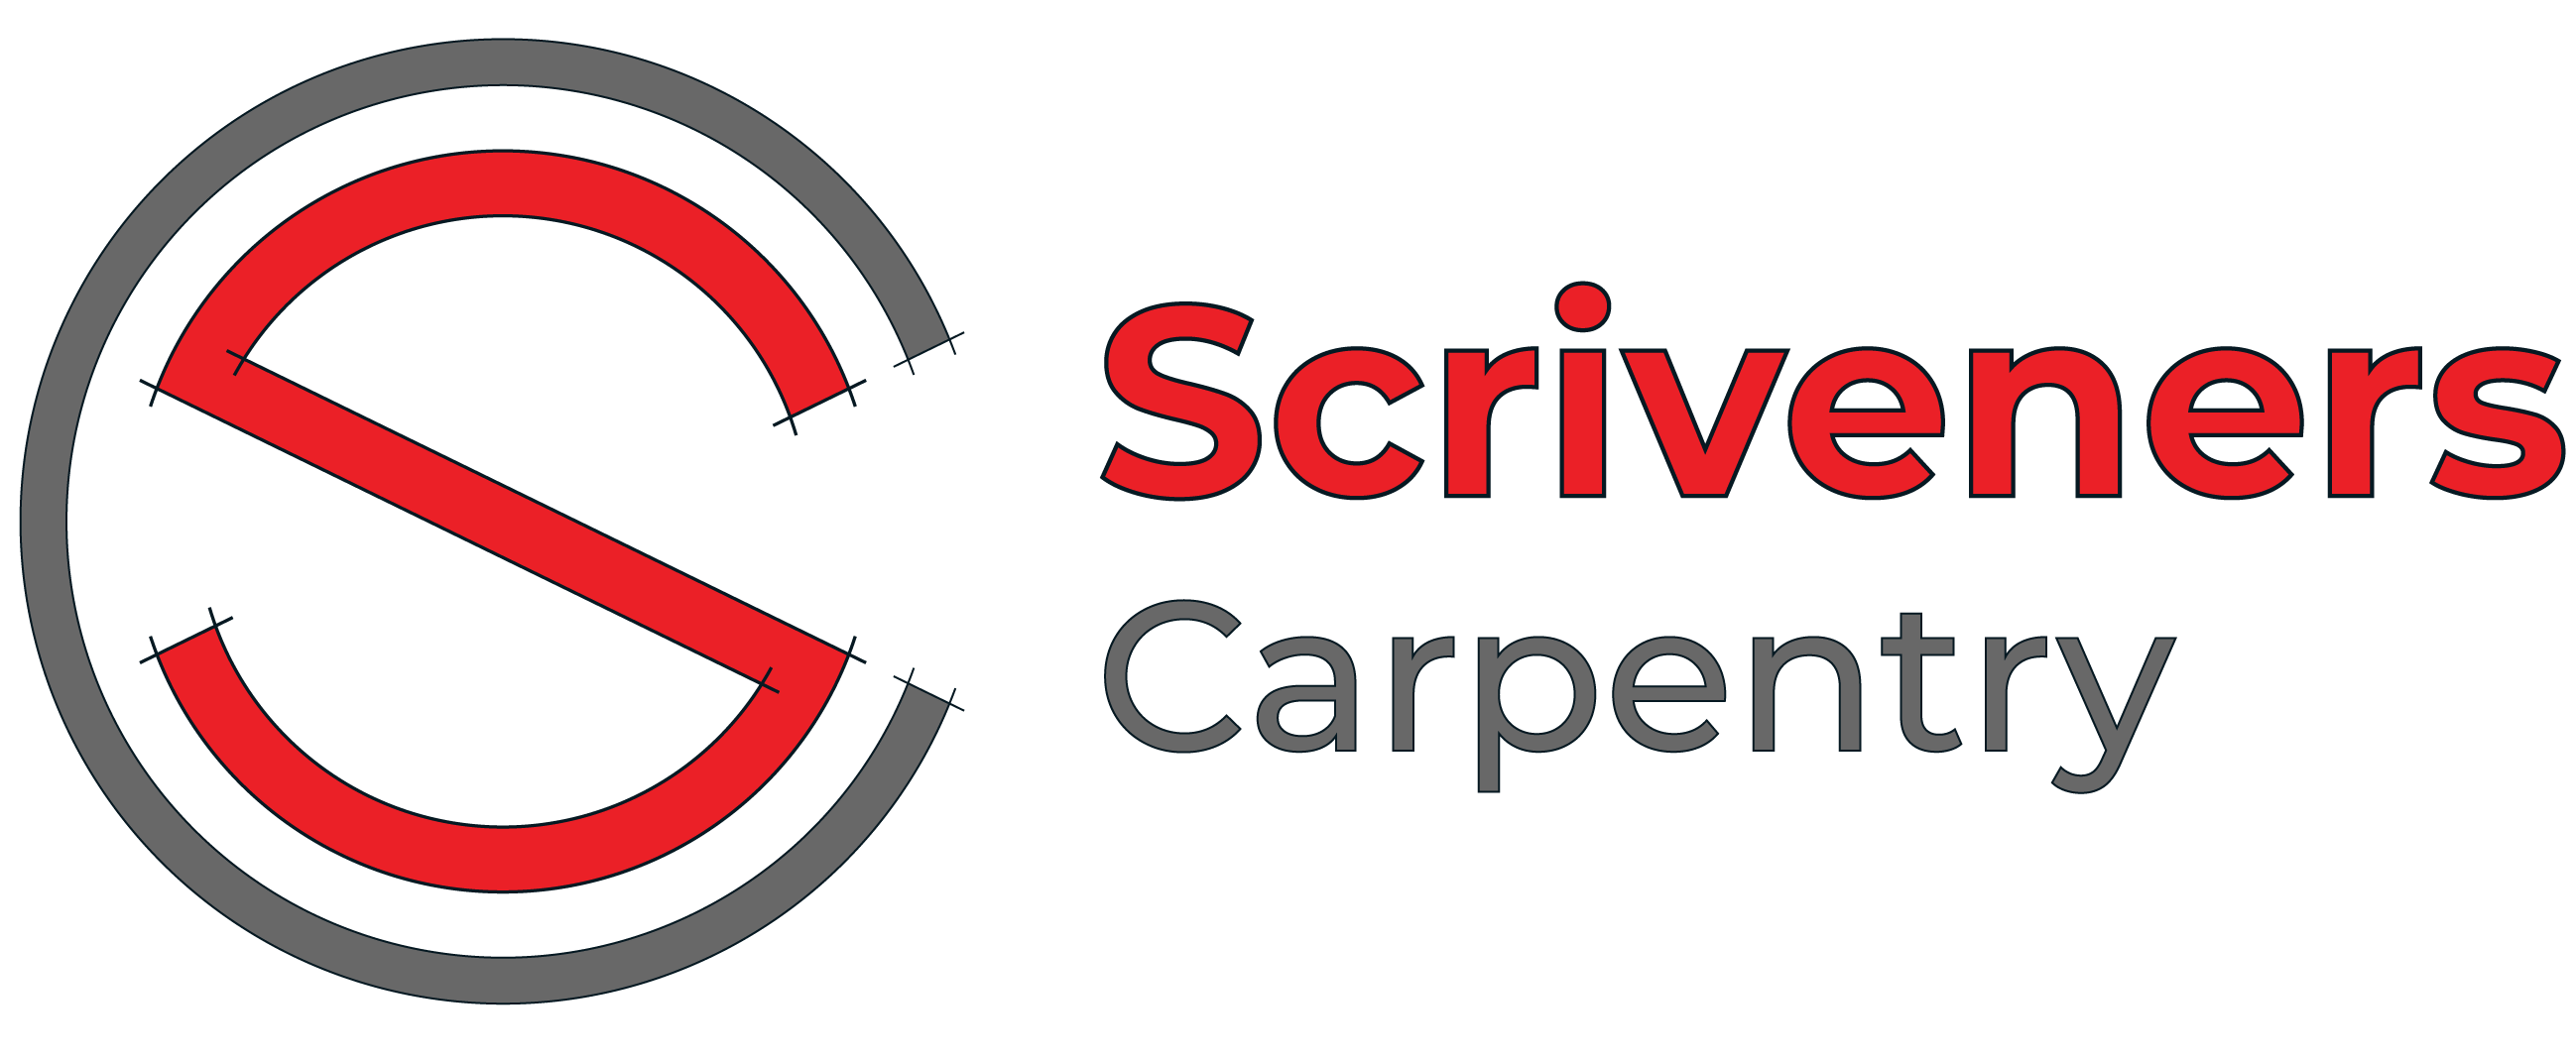 Scriveners Carpentry